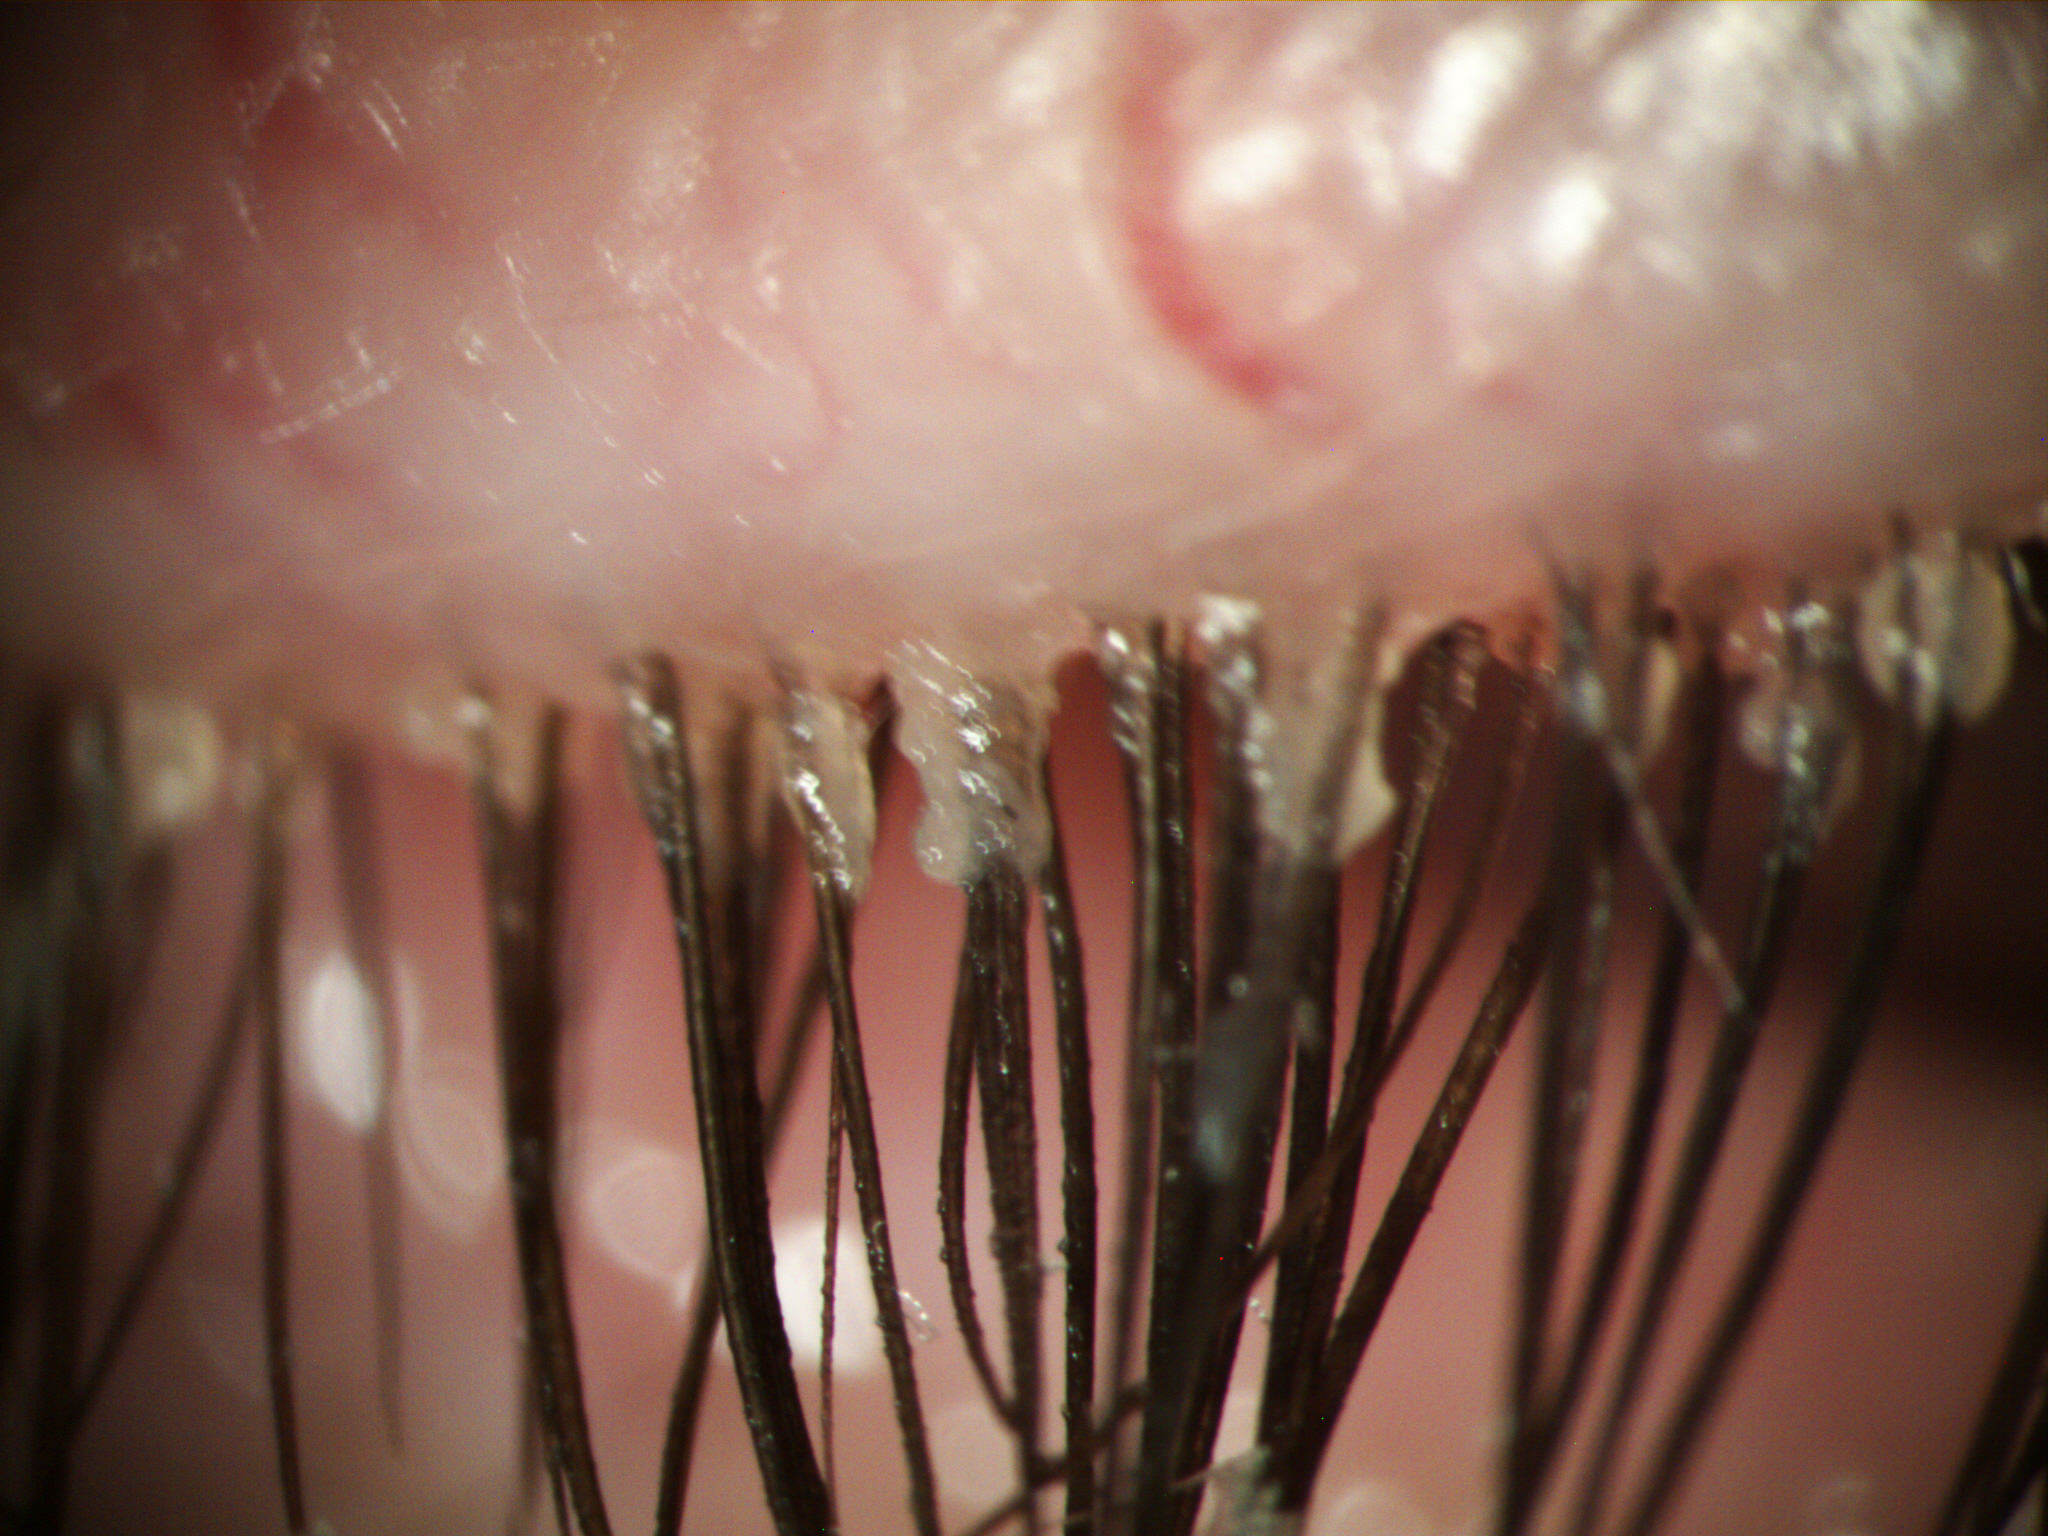 Blepharitis What Is It Painless Treatments At Dry Eye Doctor